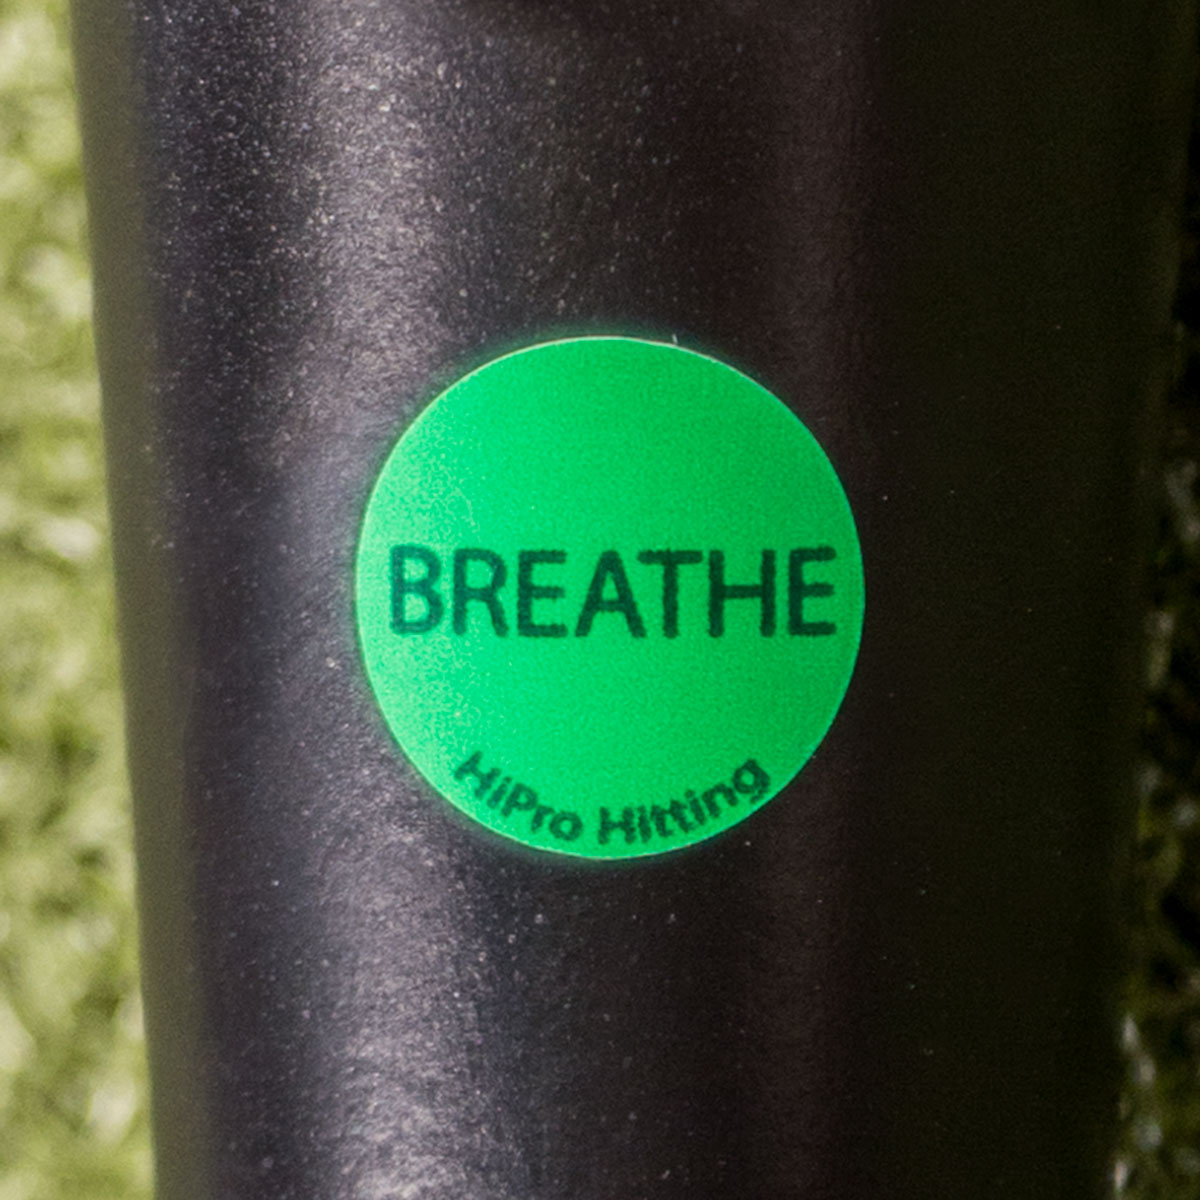 HiPro Hitting- Breathe Decal